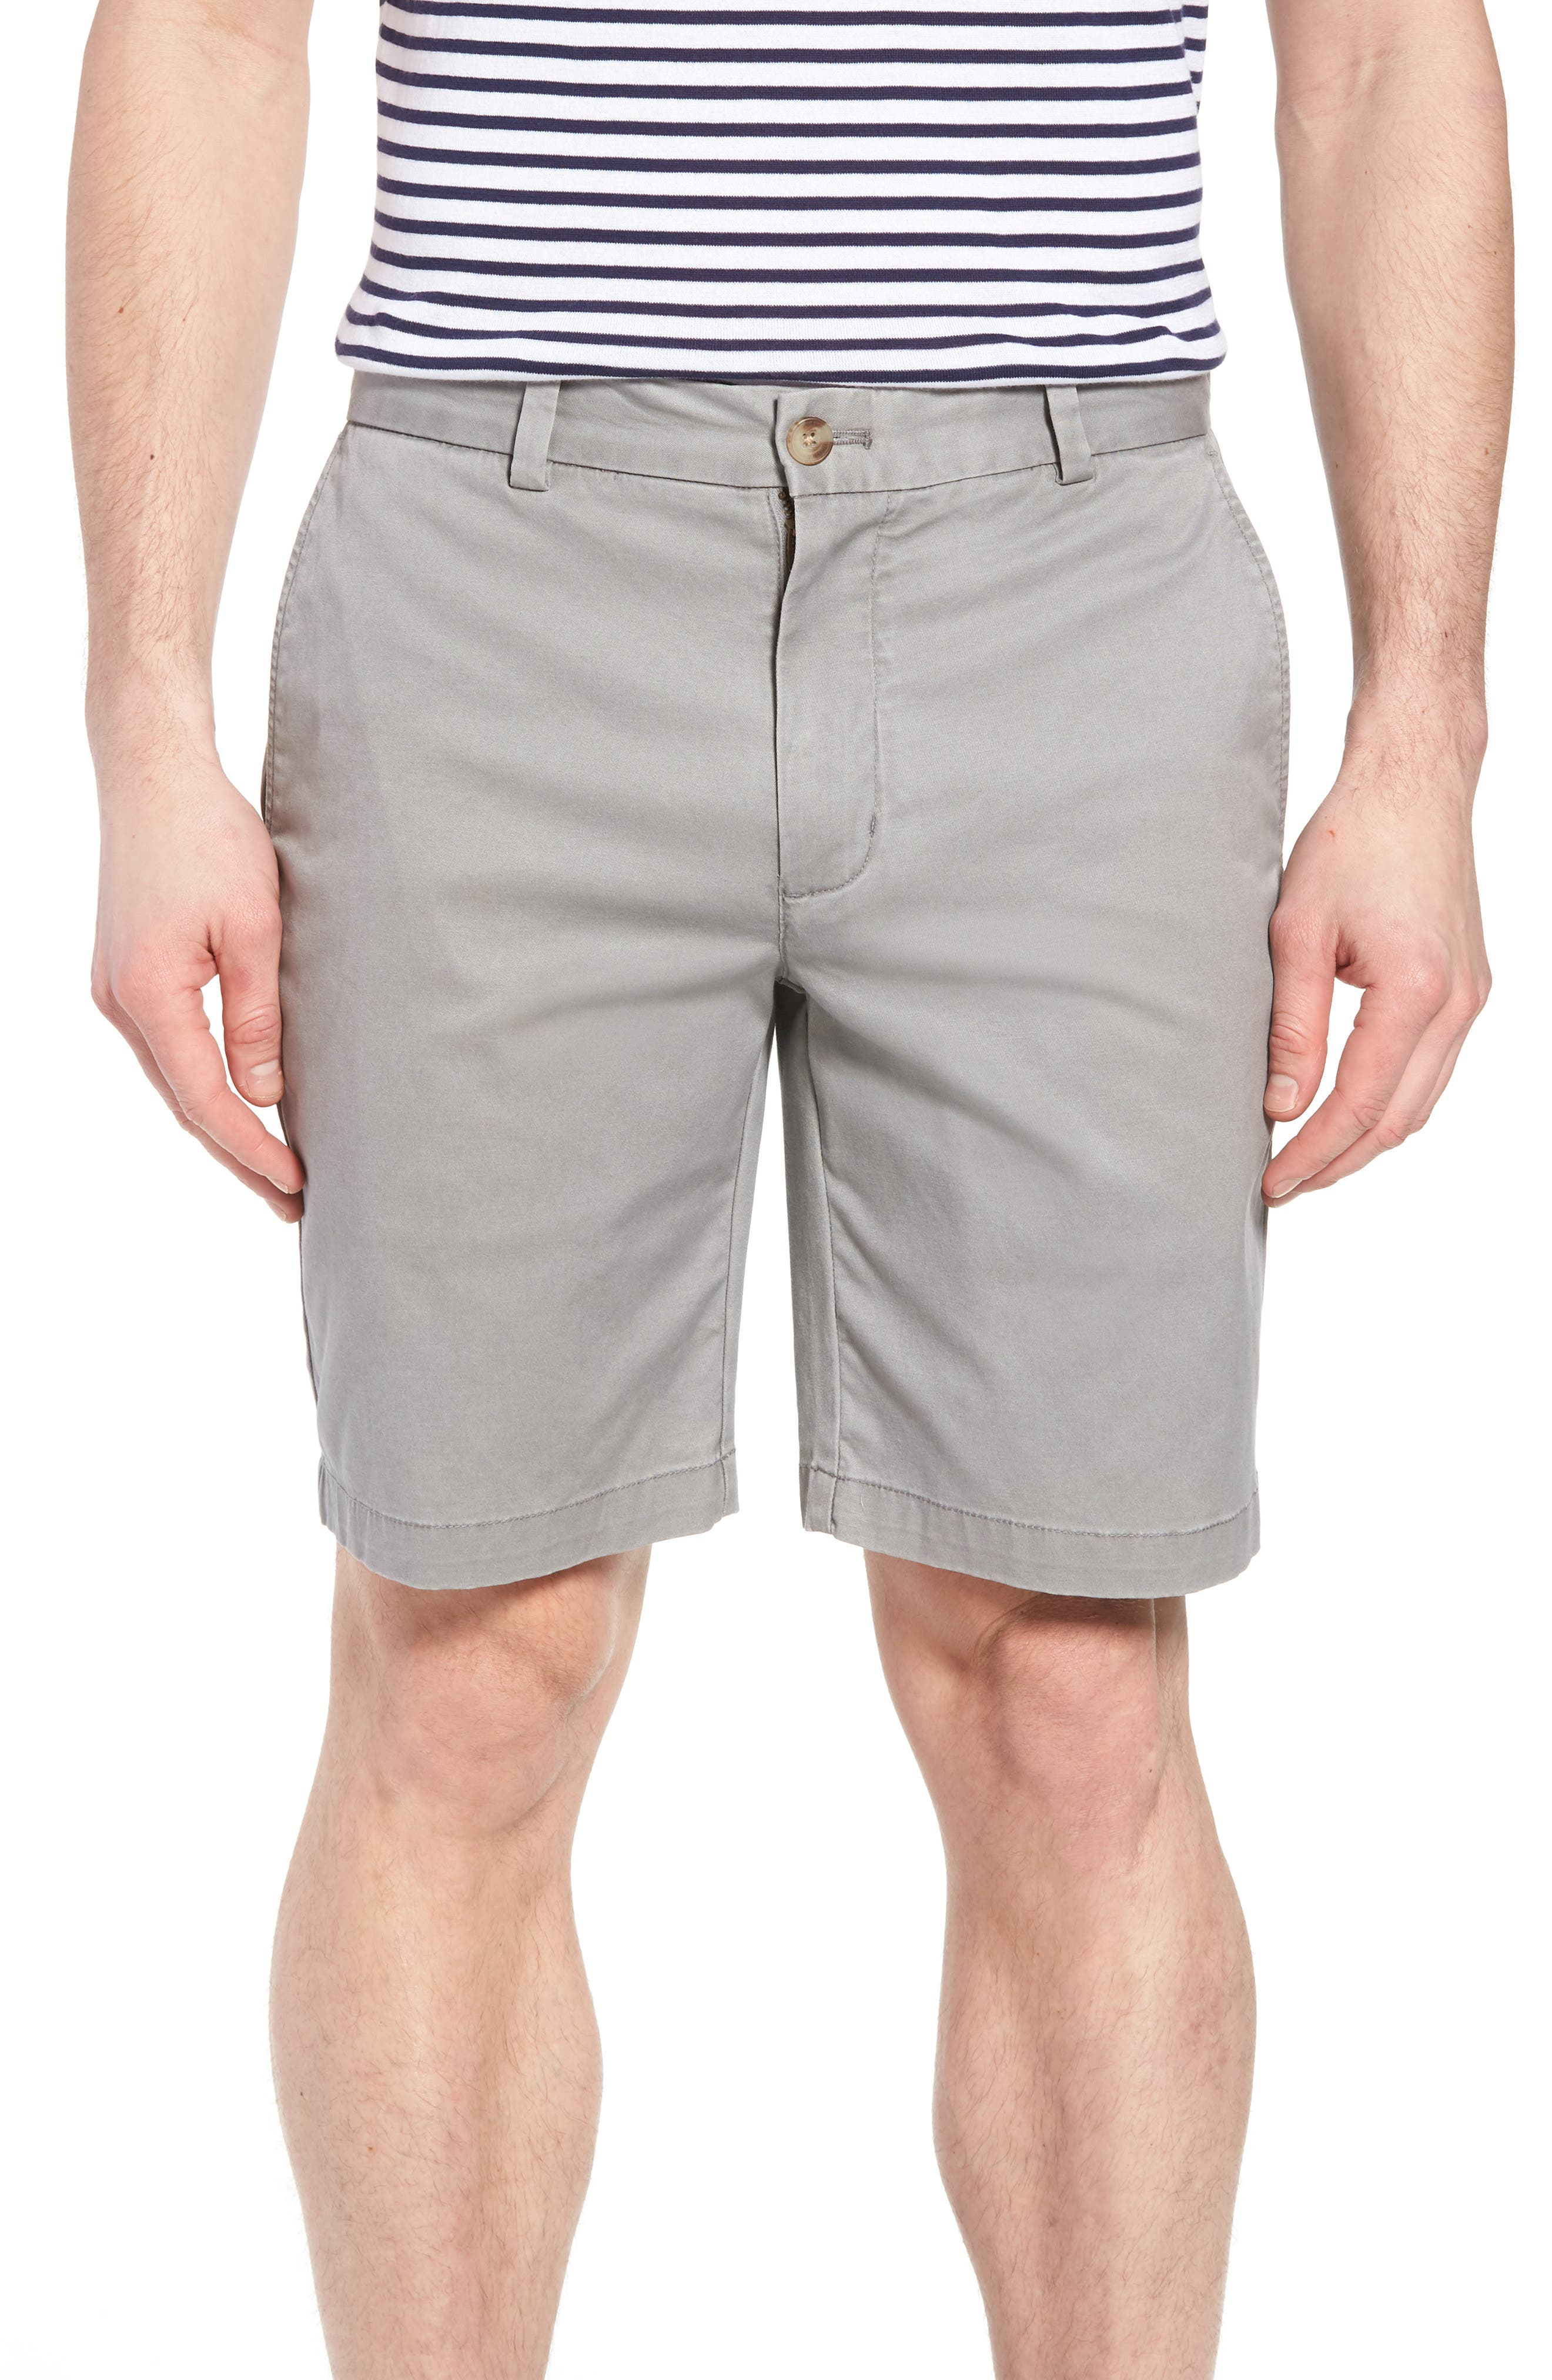 VINEYARD VINES 9 Inch Stretch Breaker Shorts, Main, color, ANCHOR GREY